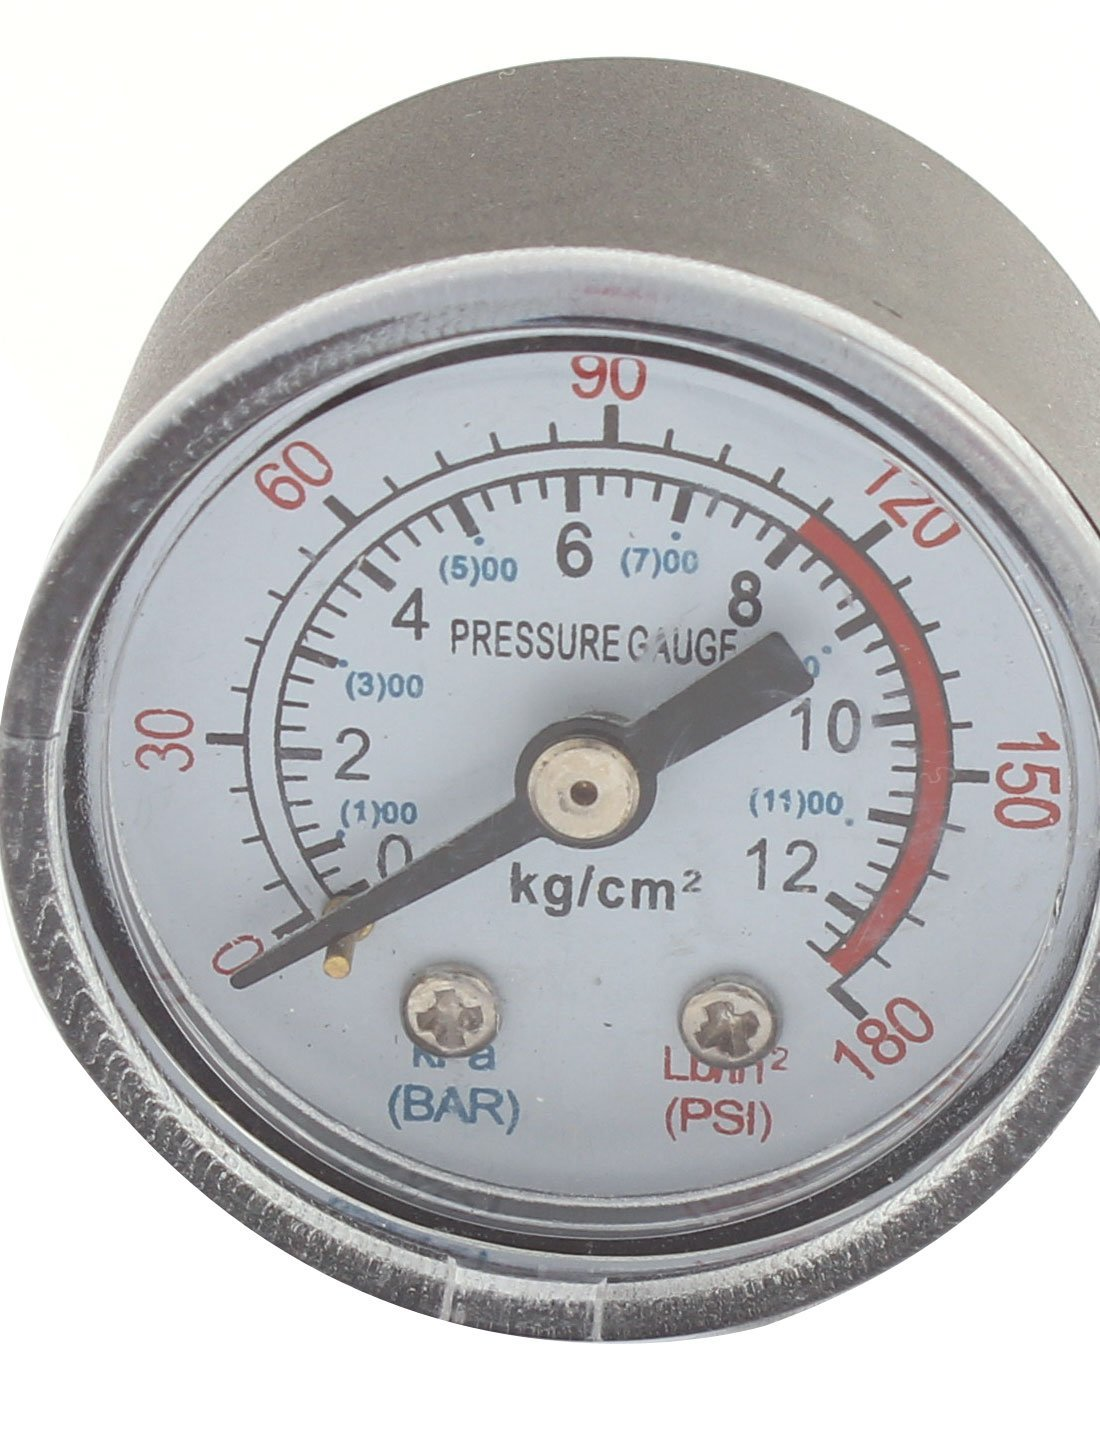 0-180psi 0-12 kg/cm2 1/8BSP Thread Dia Dial Air Pressure Gauge 2 Pcs DealMux US-SA-AJD-91323